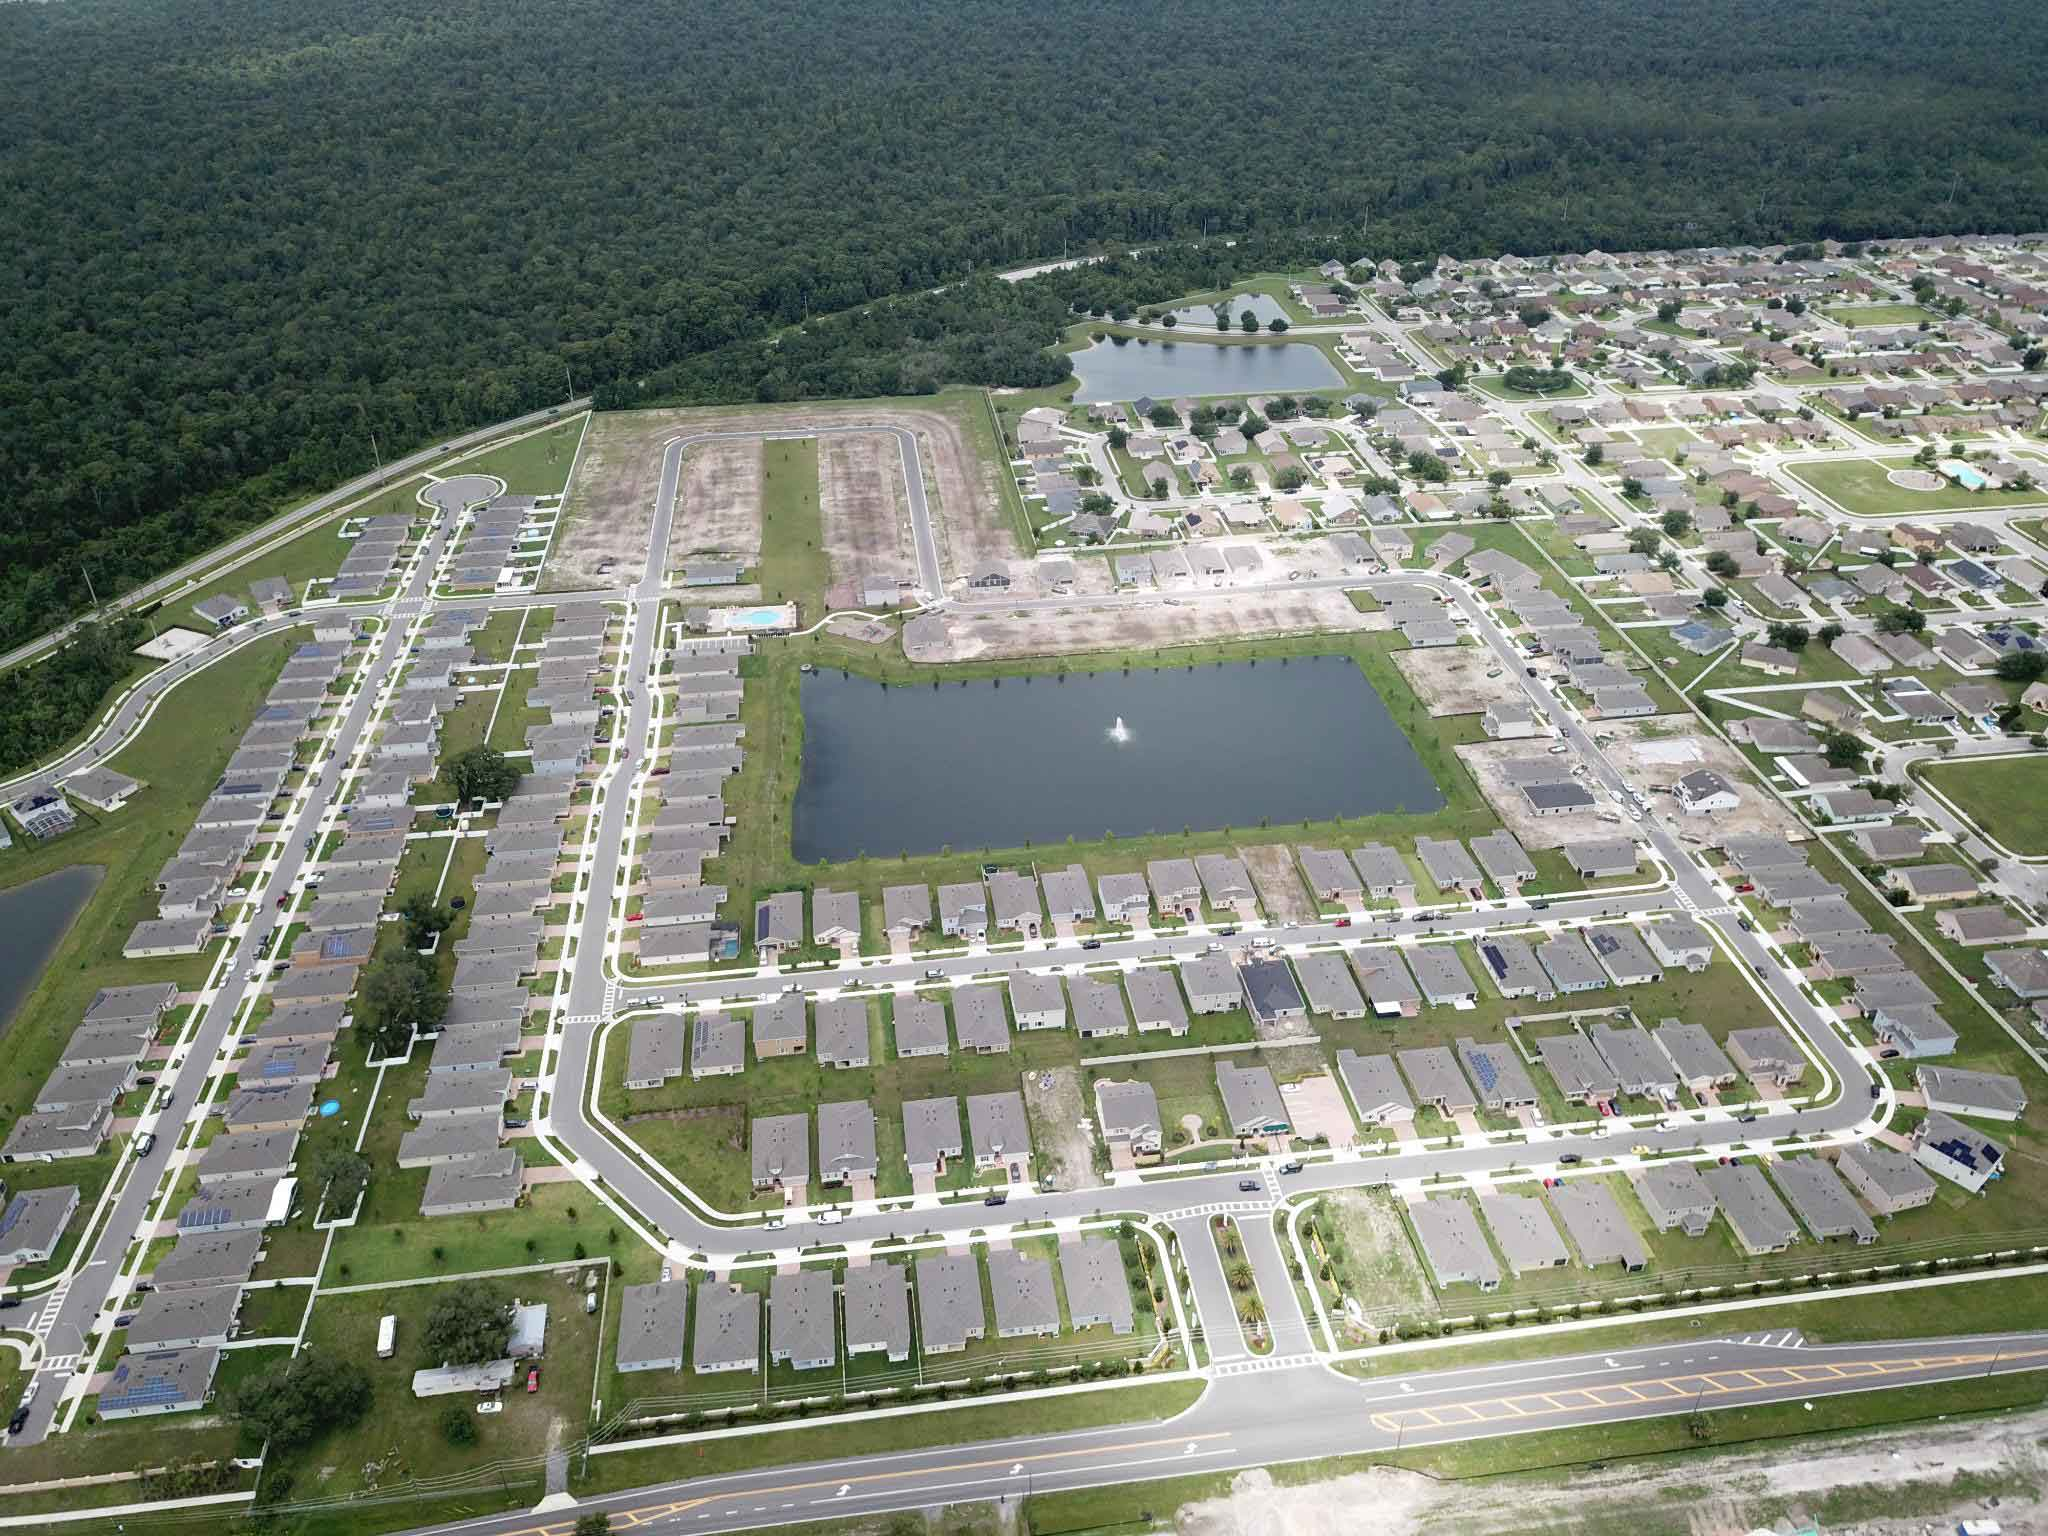 Aerial view of Evergreen Estates